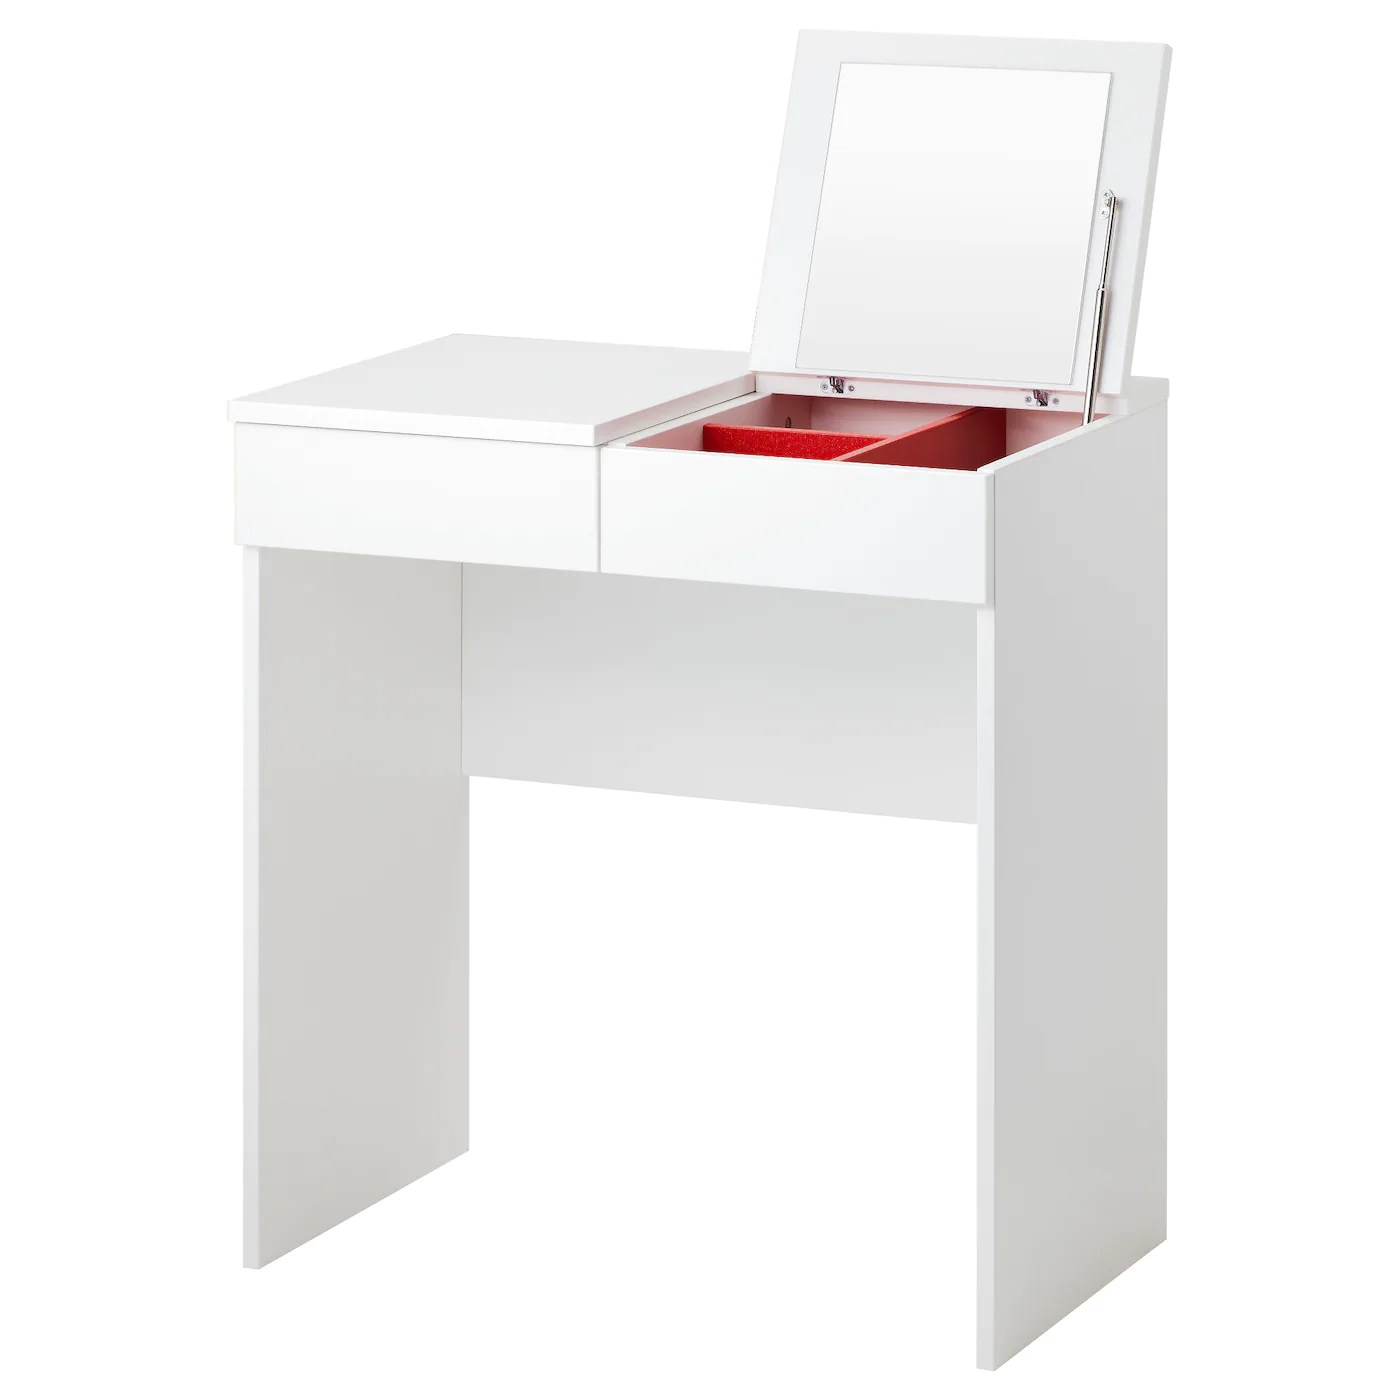 Ikéa Dressing Brimnes Dressing Table White 70 X 42 Cm Ikea